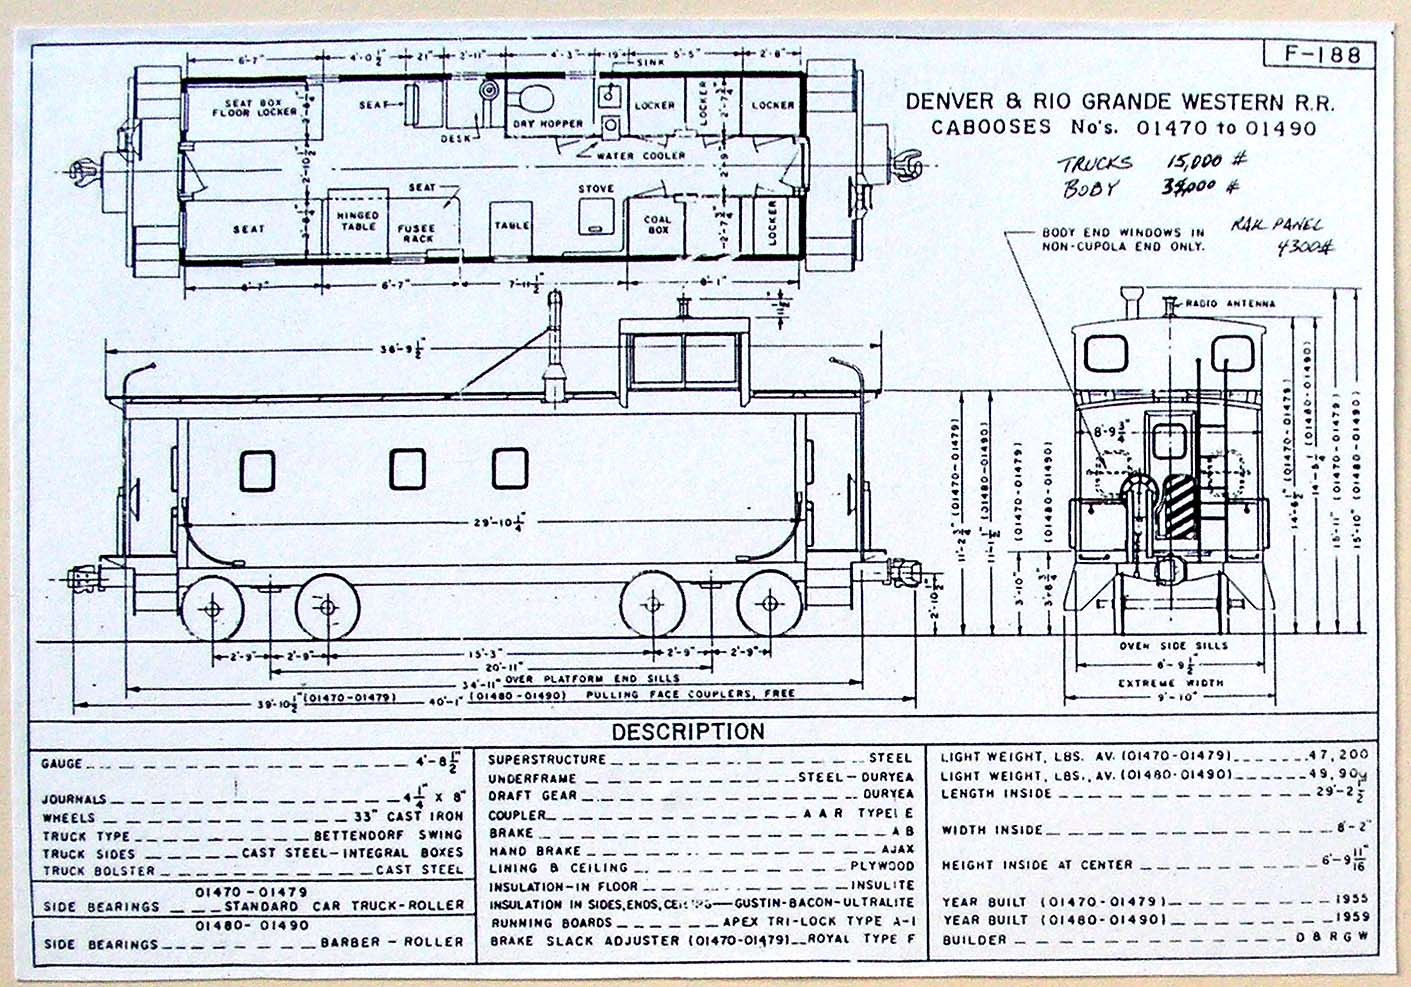 Train Caboose Drawing At Free For Personal Use Ho Layout Wiring Diagrams 1411x987 Plans Model Railroad Ideas